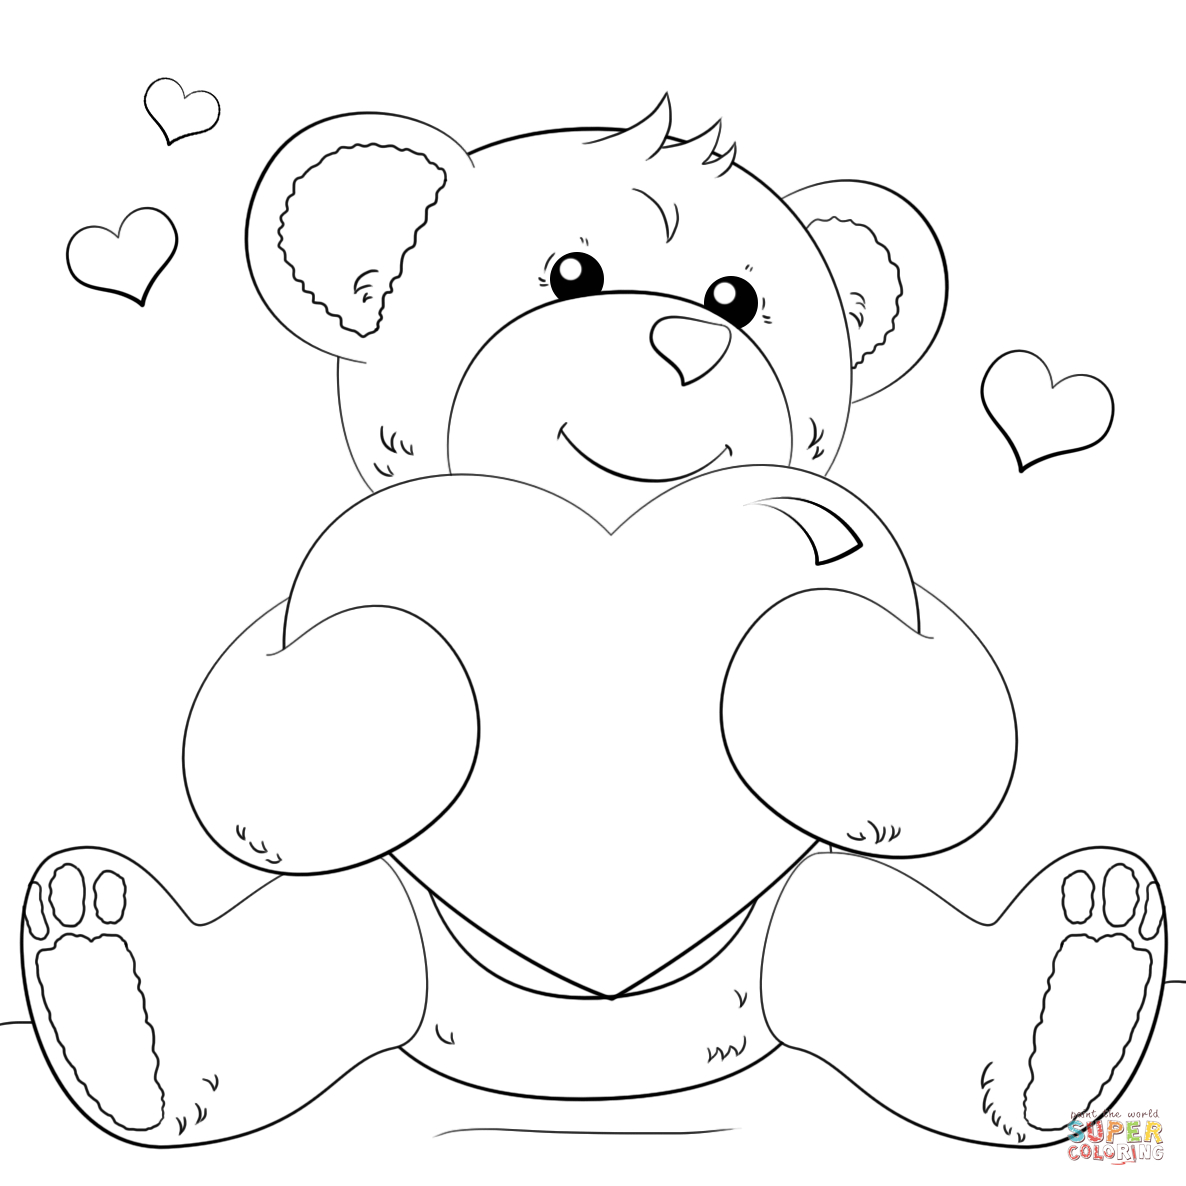 Cute Bear With Heart Coloring Page | Free Printable Coloring Pages - Teddy Bear Coloring Pages Free Printable